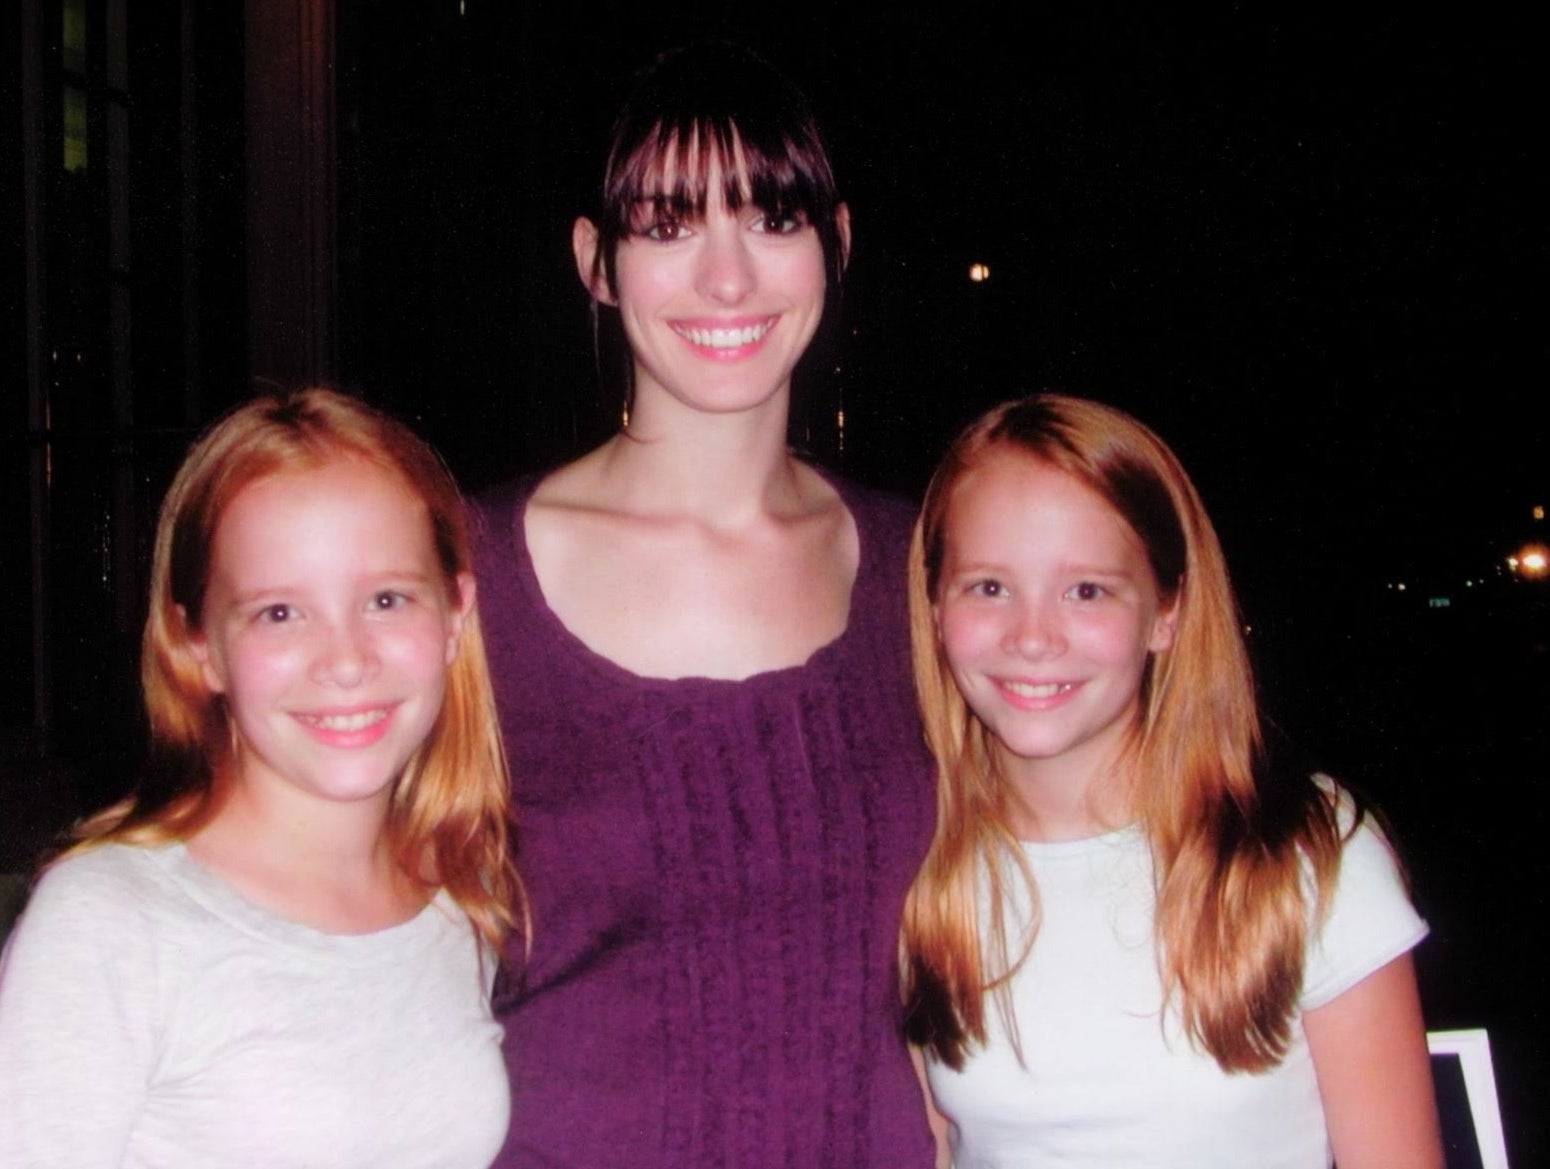 And they were most excited about working with Anne Hathaway.